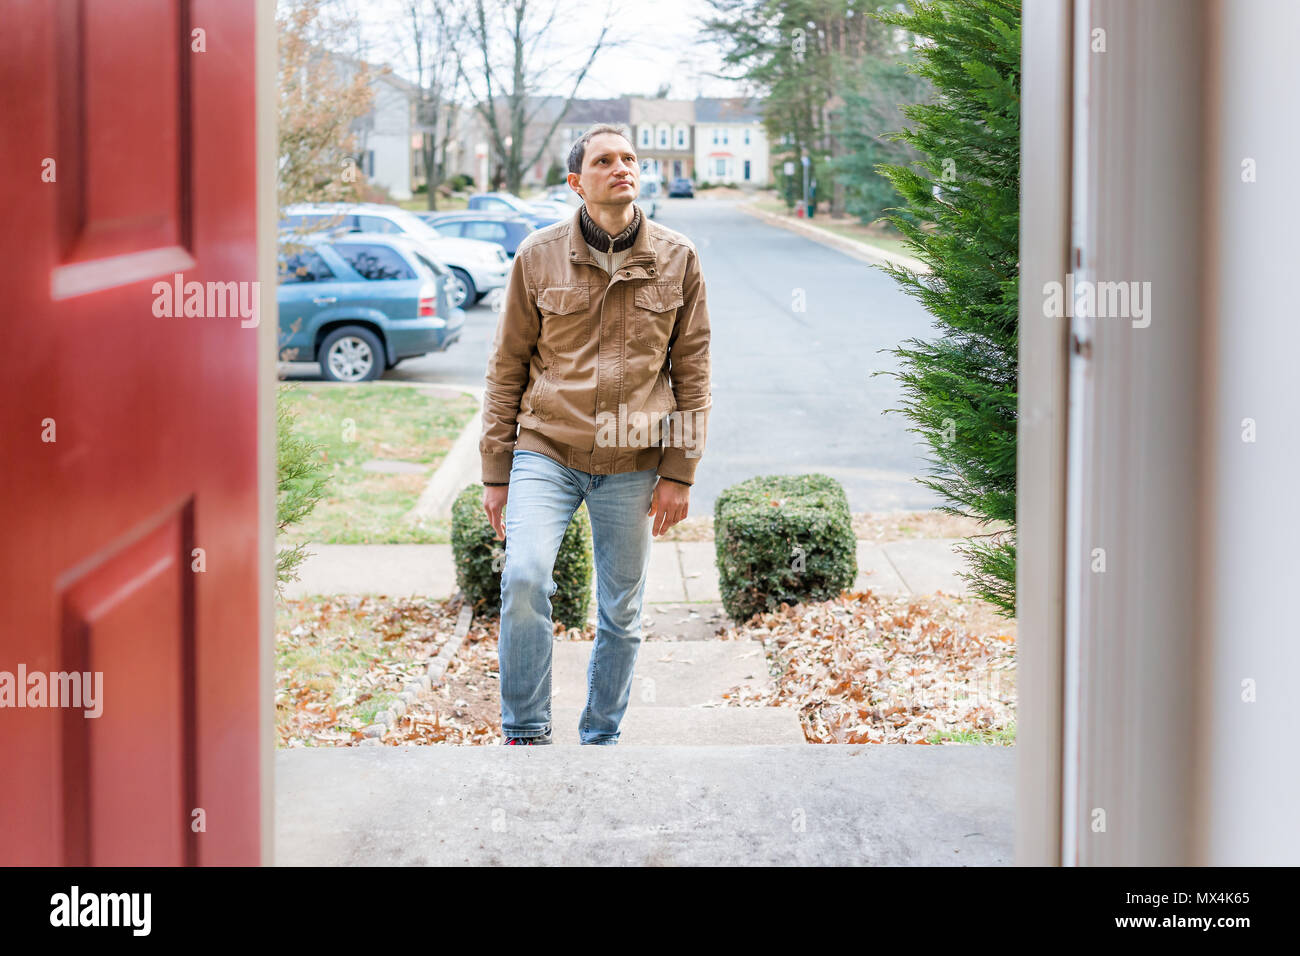 Young man standing on front porch frontyard steps in front of house home buyer looking to buy property real estate customer client in townhouse reside - Stock Image